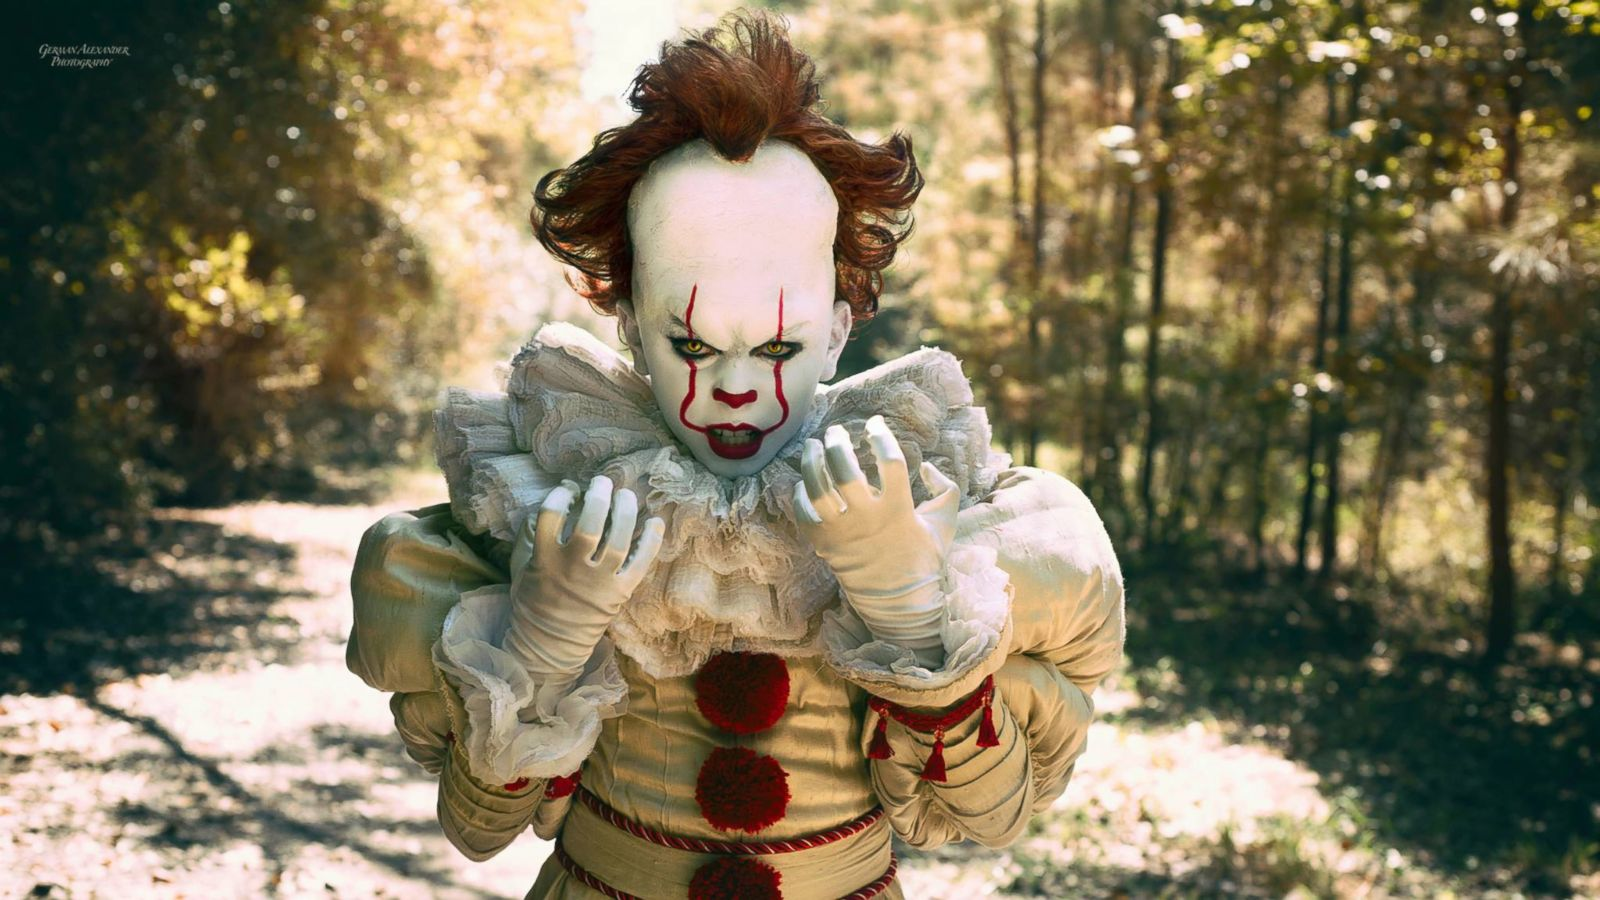 10 year old poses as pennywise in incredibly creepy photos for halloween abc news